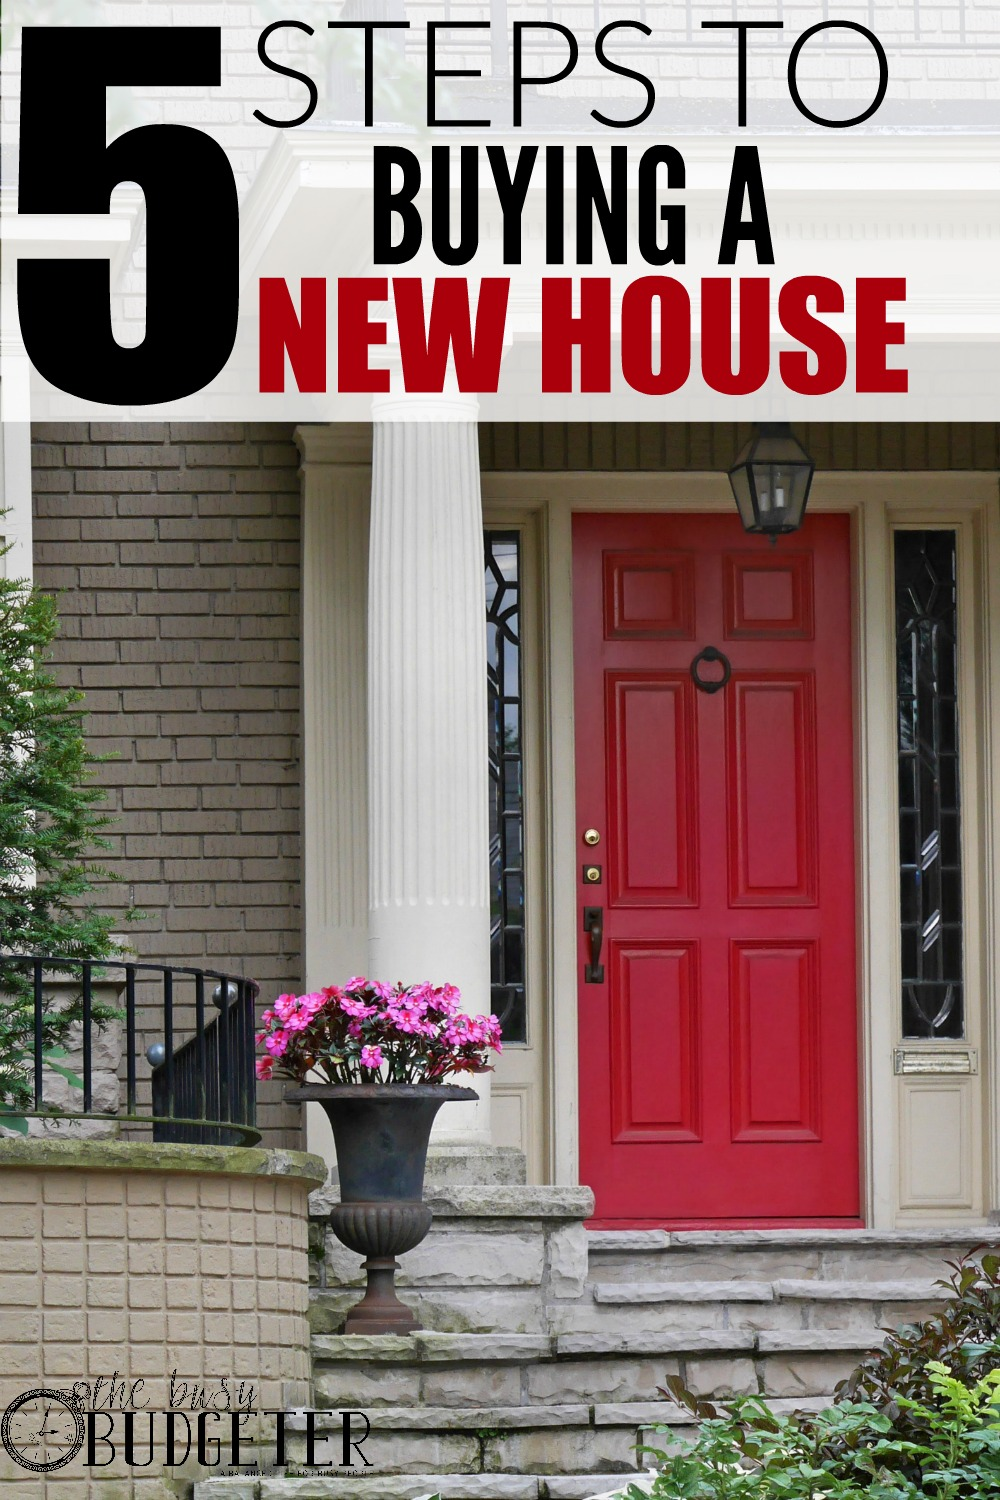 5 Steps To Buying A New House. This post was exactly what I needed to read right now. We've been talking about buying a home but weren't sure where to start! Now I feel like it could be totally manageable for us to start the process!